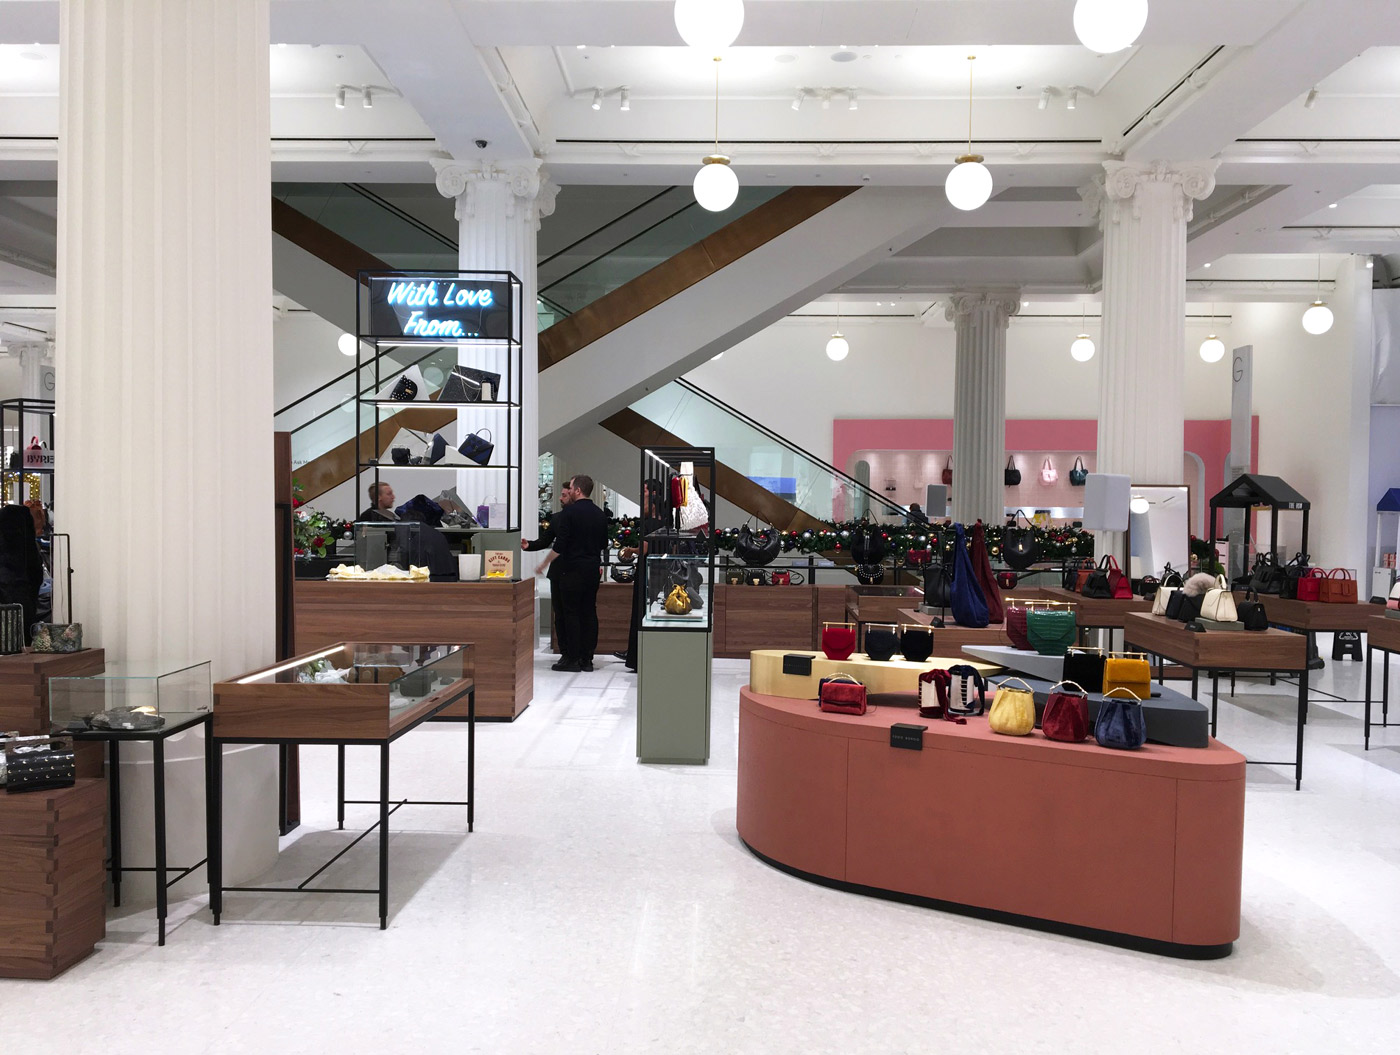 a0909be3cc61e 29.11.2017Phase II of Selfridges Accessories Hall opens